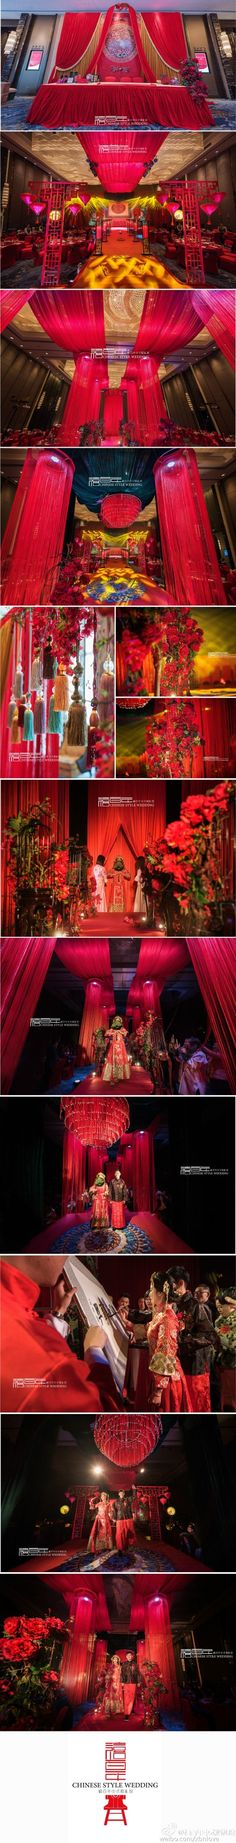 Oriental theme wedding photobooth or backdrop idea pinterest chinese wedding decororiental junglespirit Choice Image